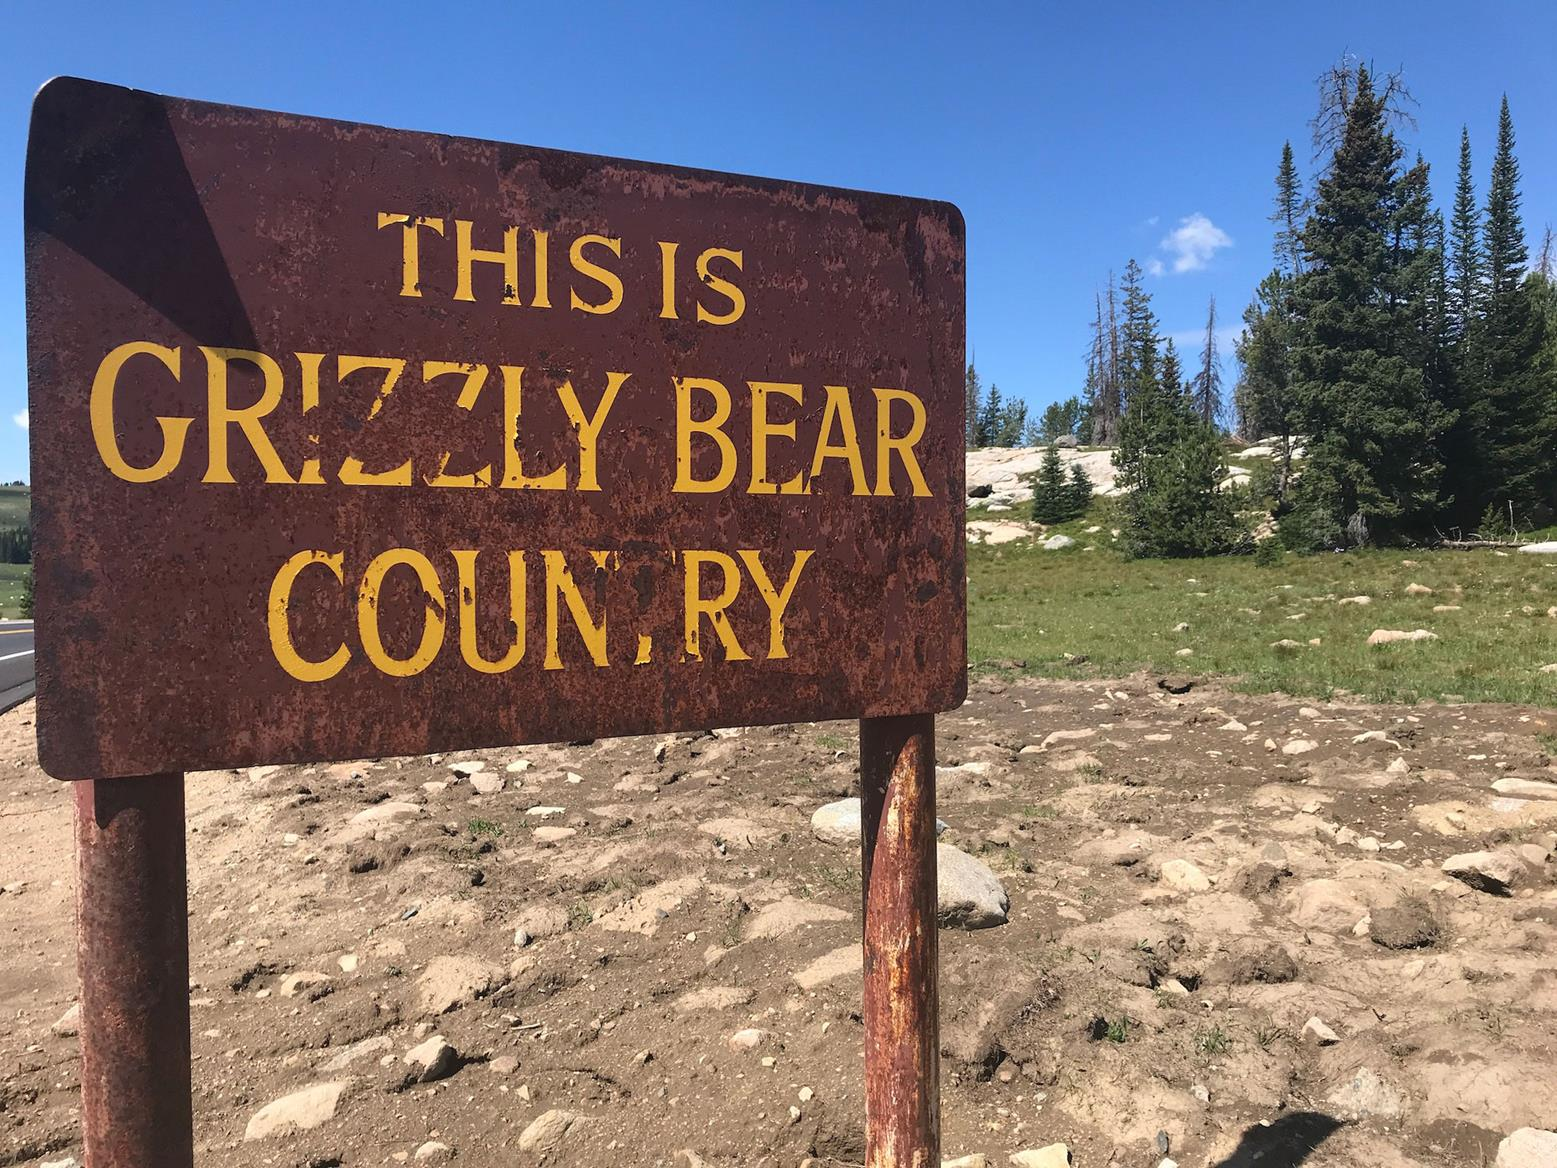 I saw this sign, but no sign of bears